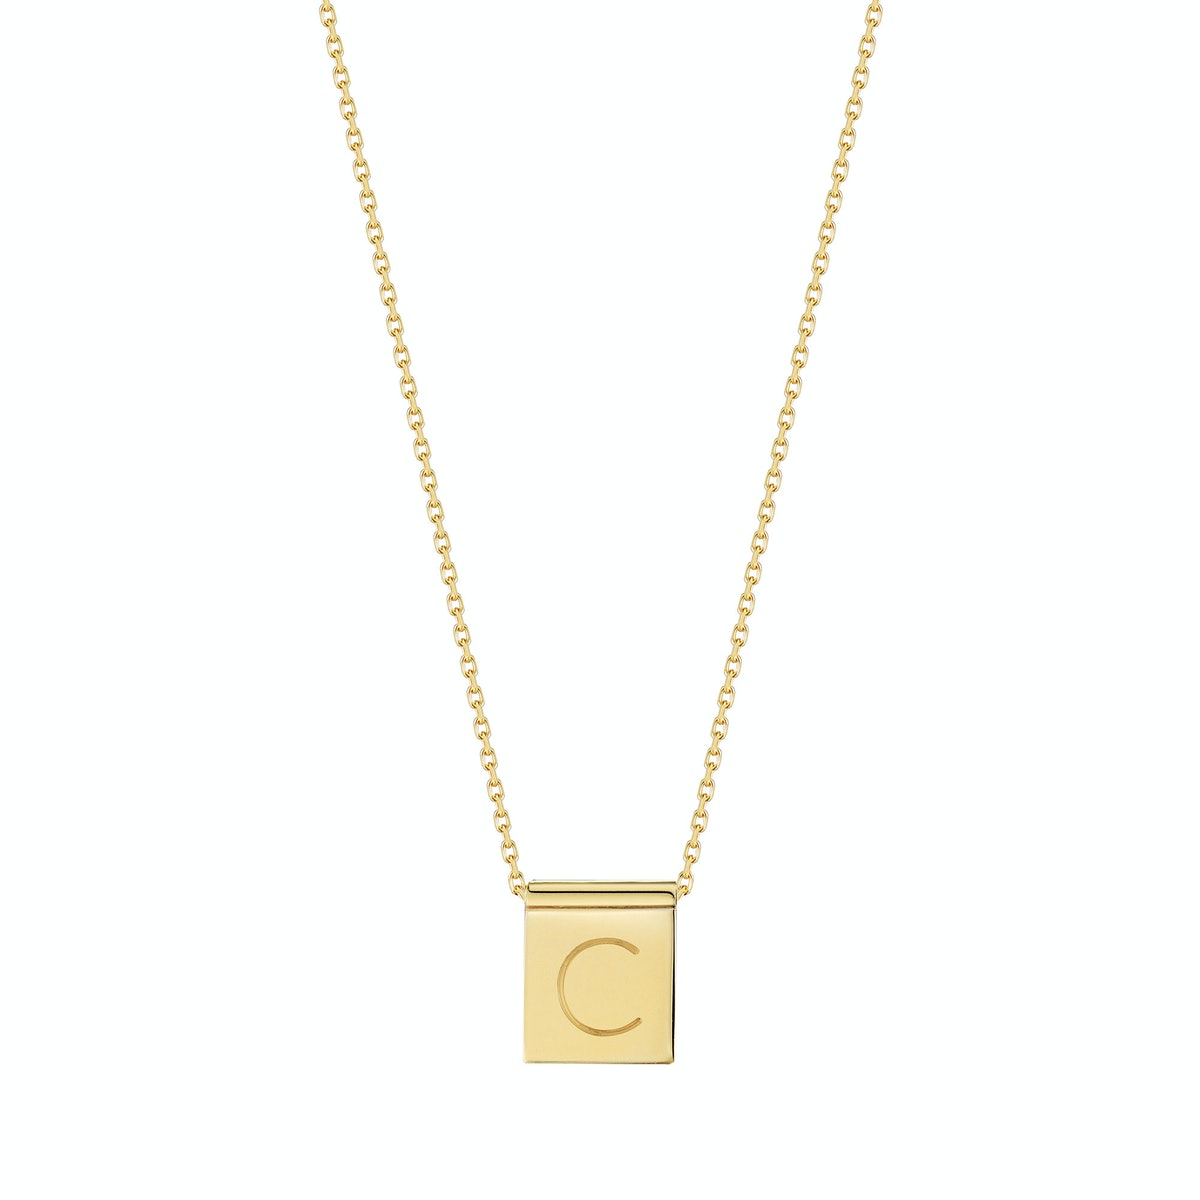 MO by Finn engraved necklace